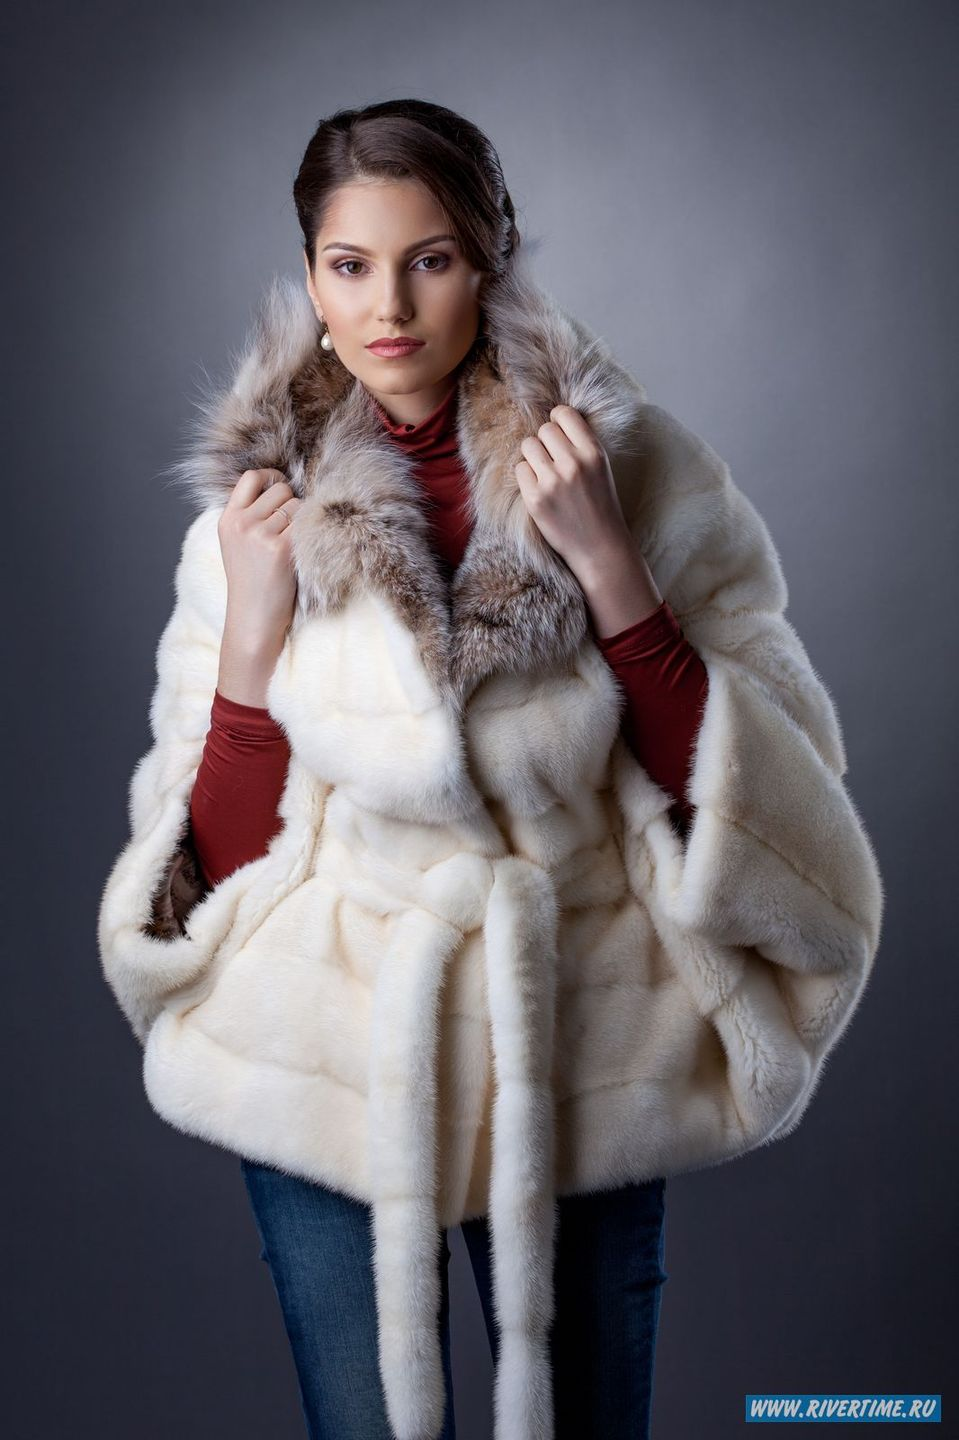 Woman in white fur coat | sleeves, collar, jeans, vinous, polo-neck, white, fur coat, hair, brunette, woman